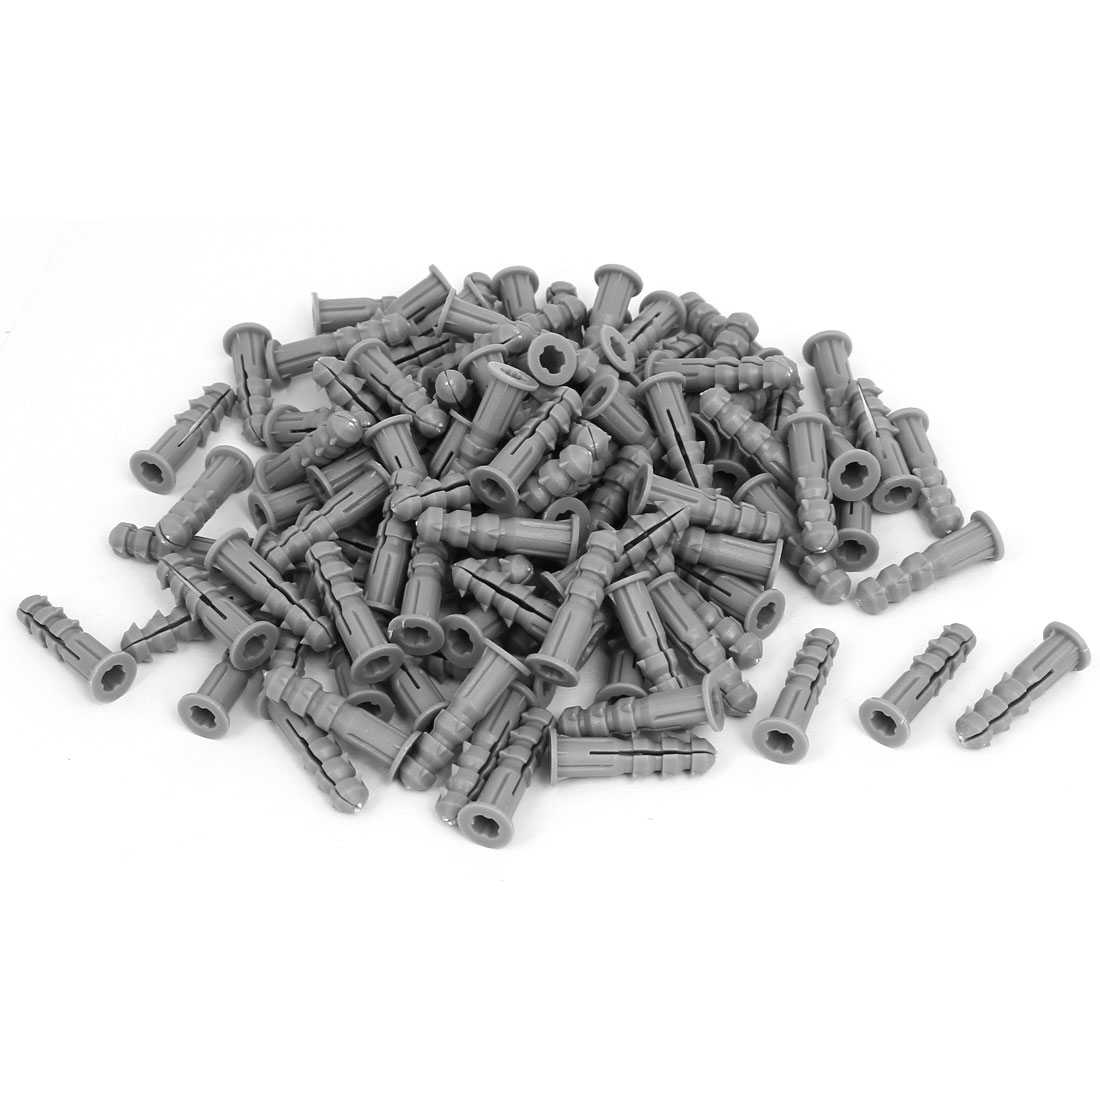 6mmx25mm Plastic Expansion Nail Wall Anchor Screw Gray 200pcs